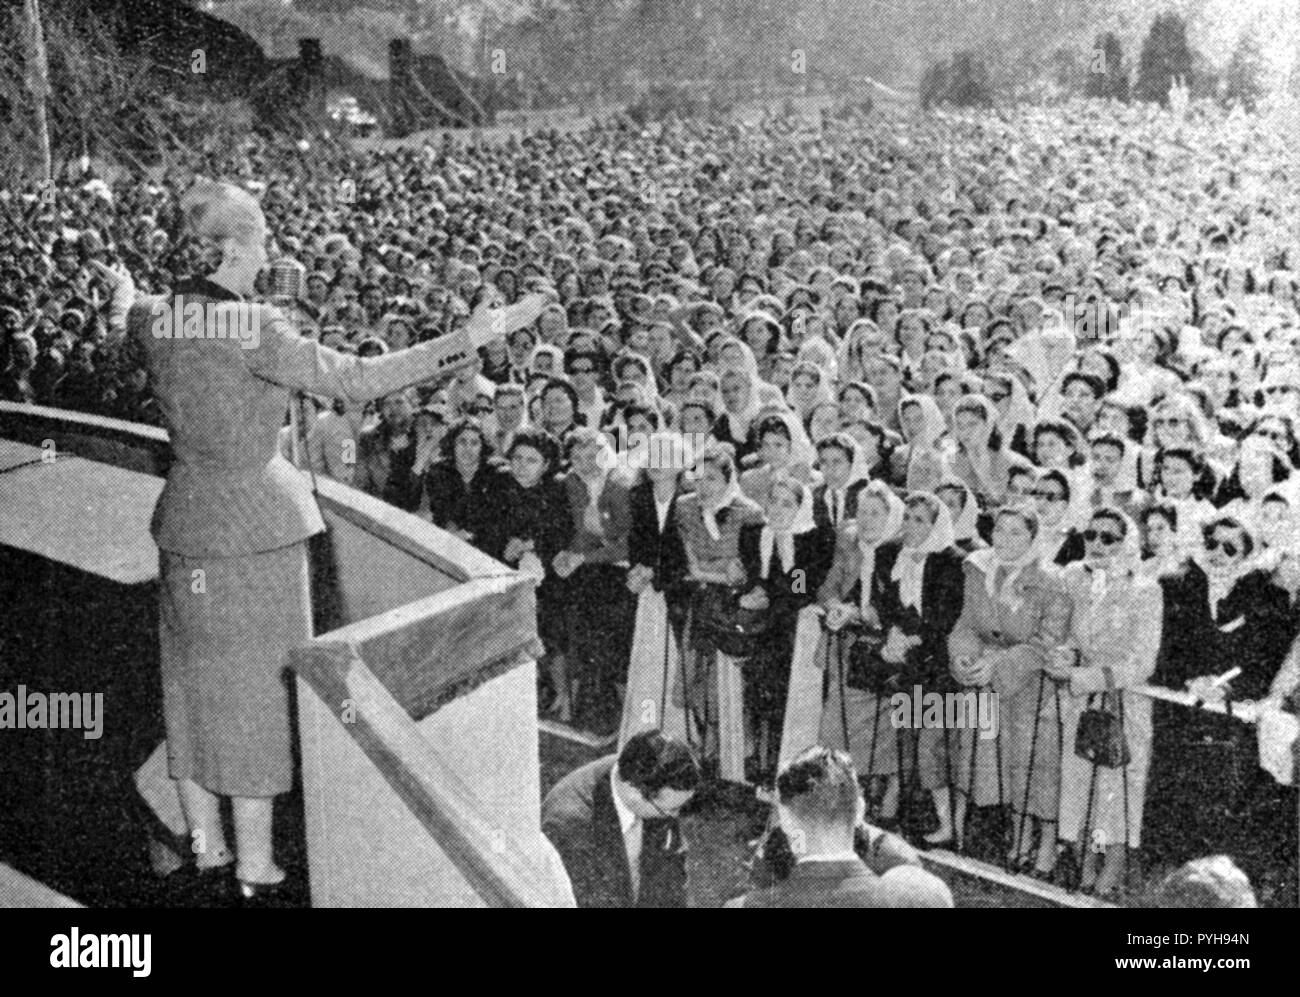 EVA PERON (1919-1952) wife of Argentine President Juan Perron, about 1948 at at rally for womens' voting rights a bout 1950 - Stock Image